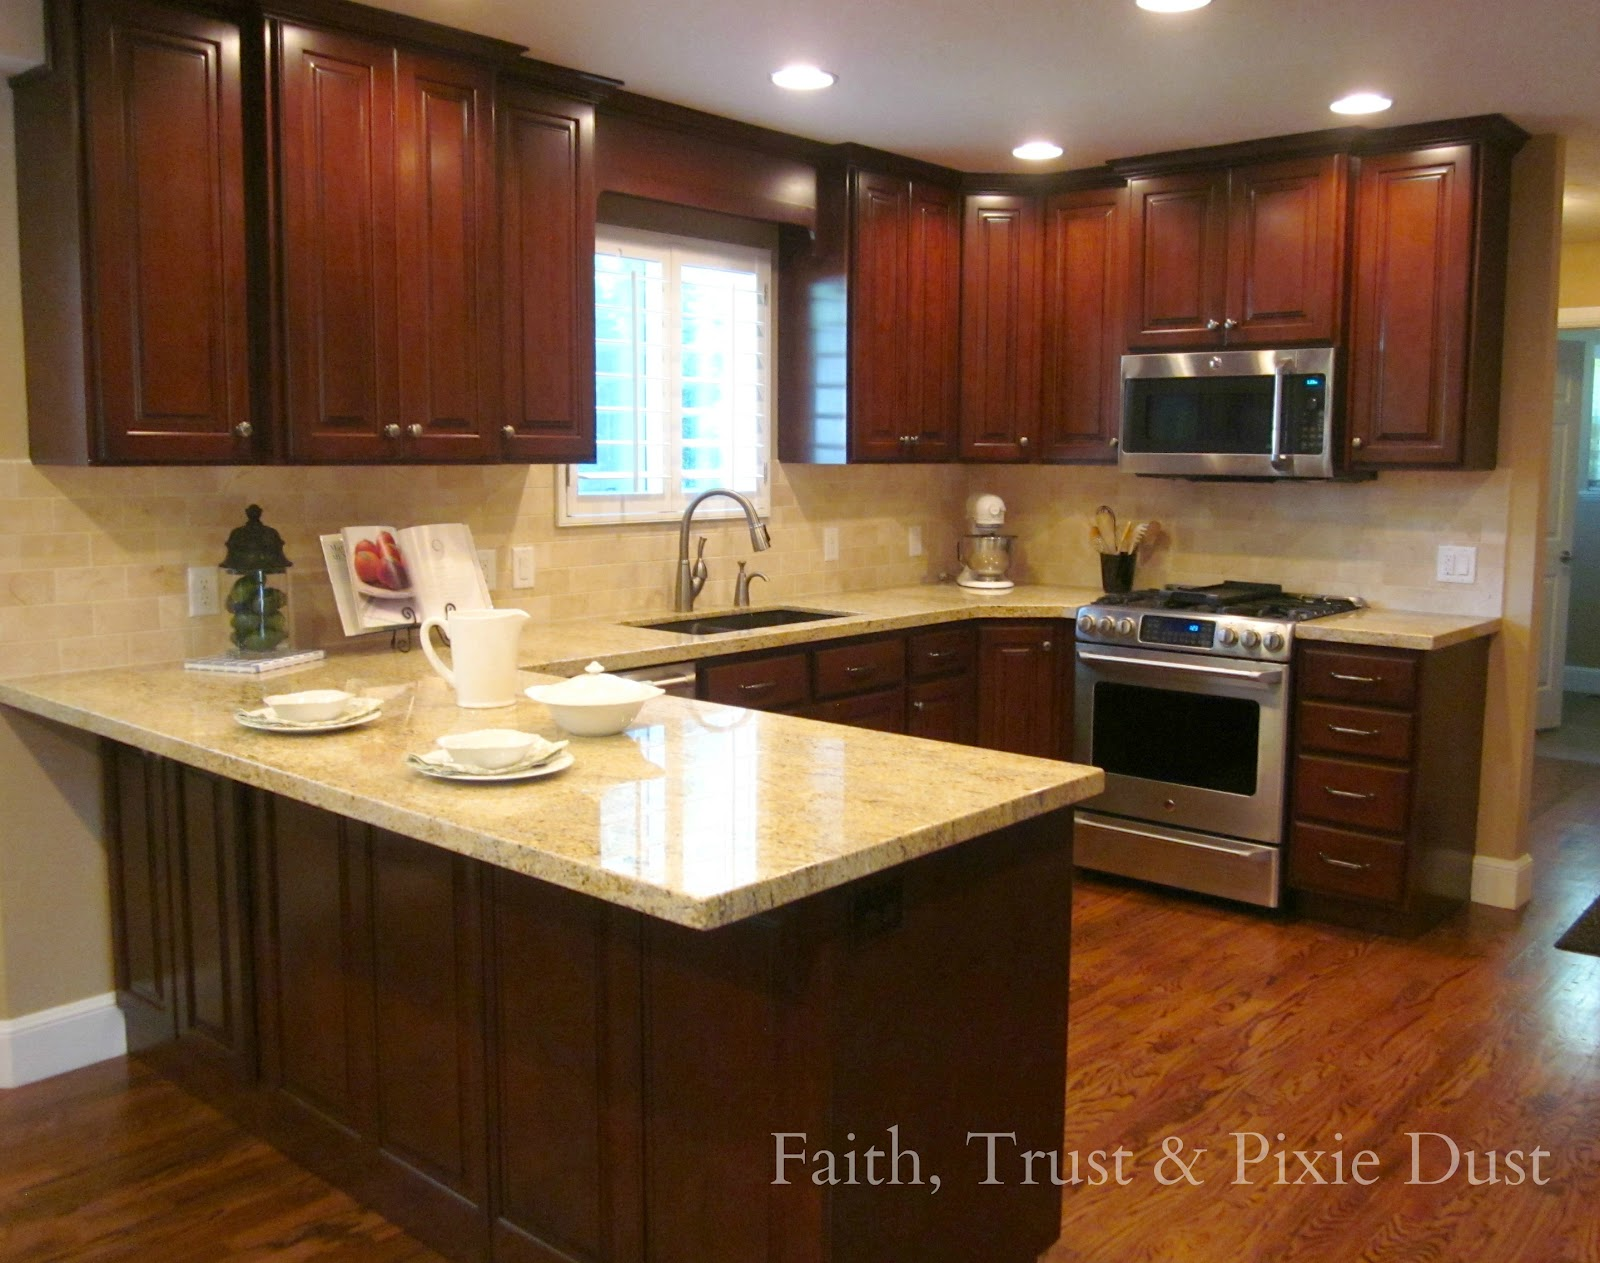 Honey i 39 m home a spectacular kitchen remodel Redo my kitchen